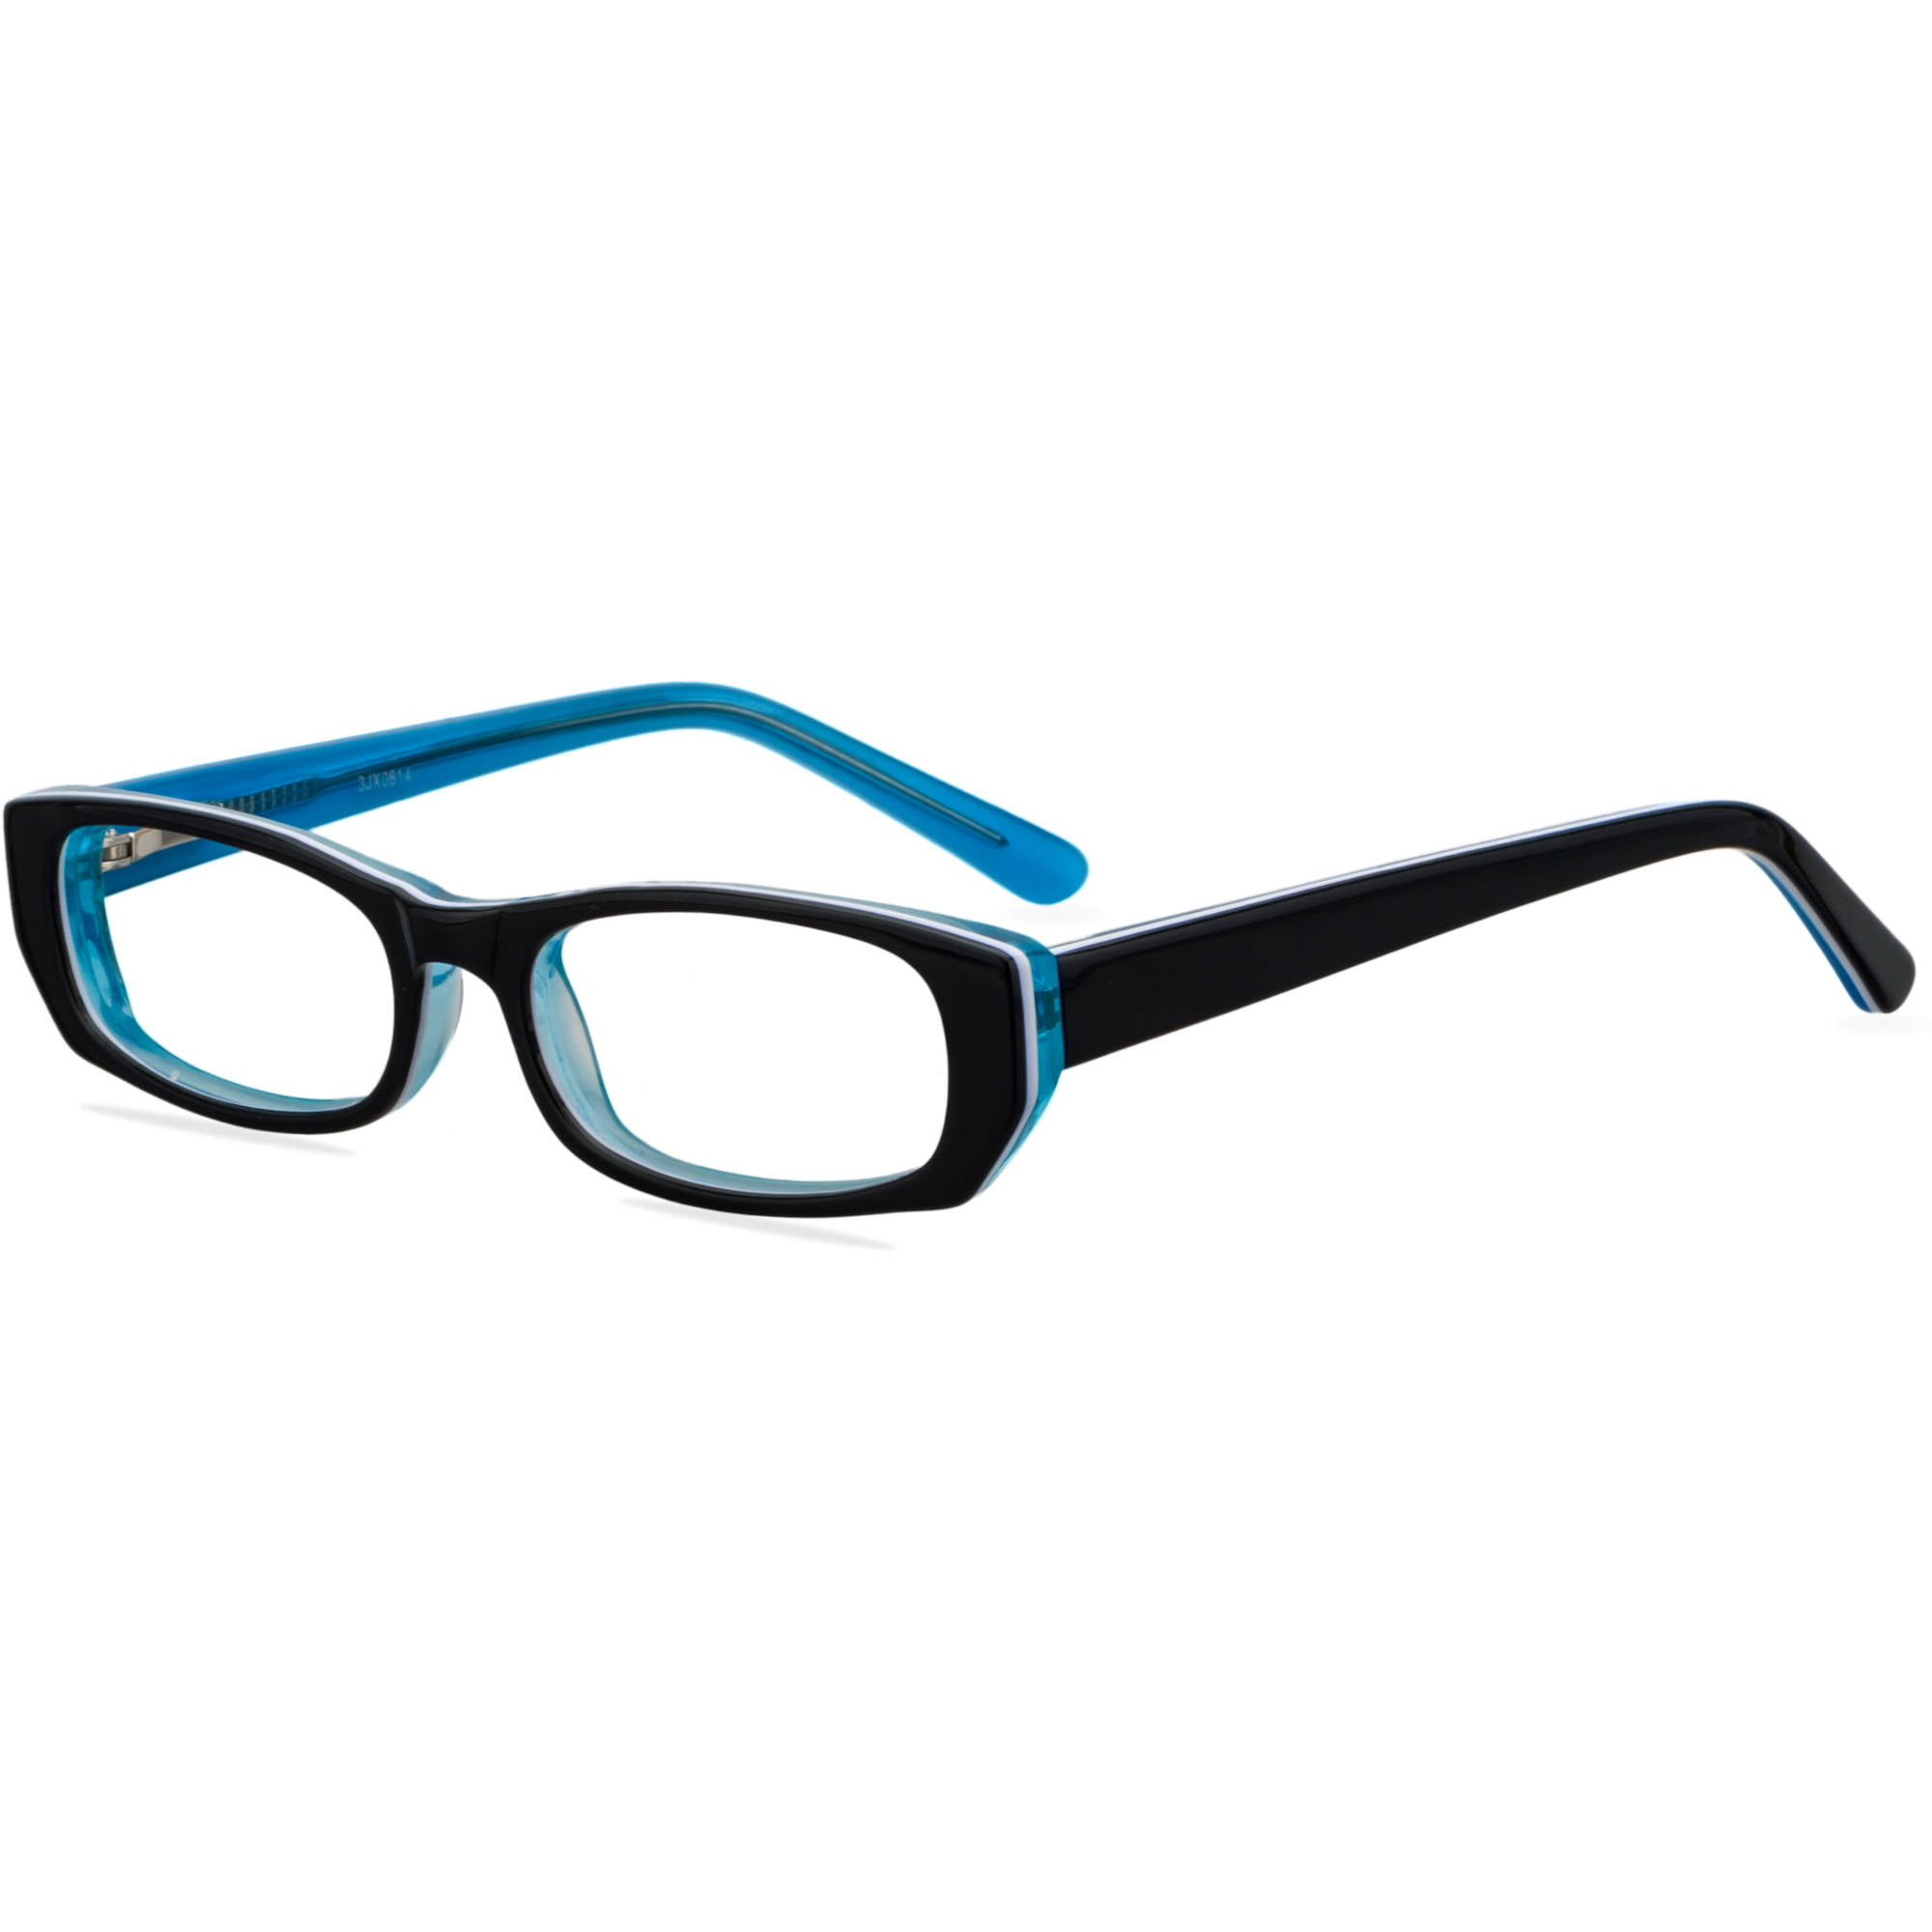 ef0c266127 Baby Phat Prescription Eyeglasses